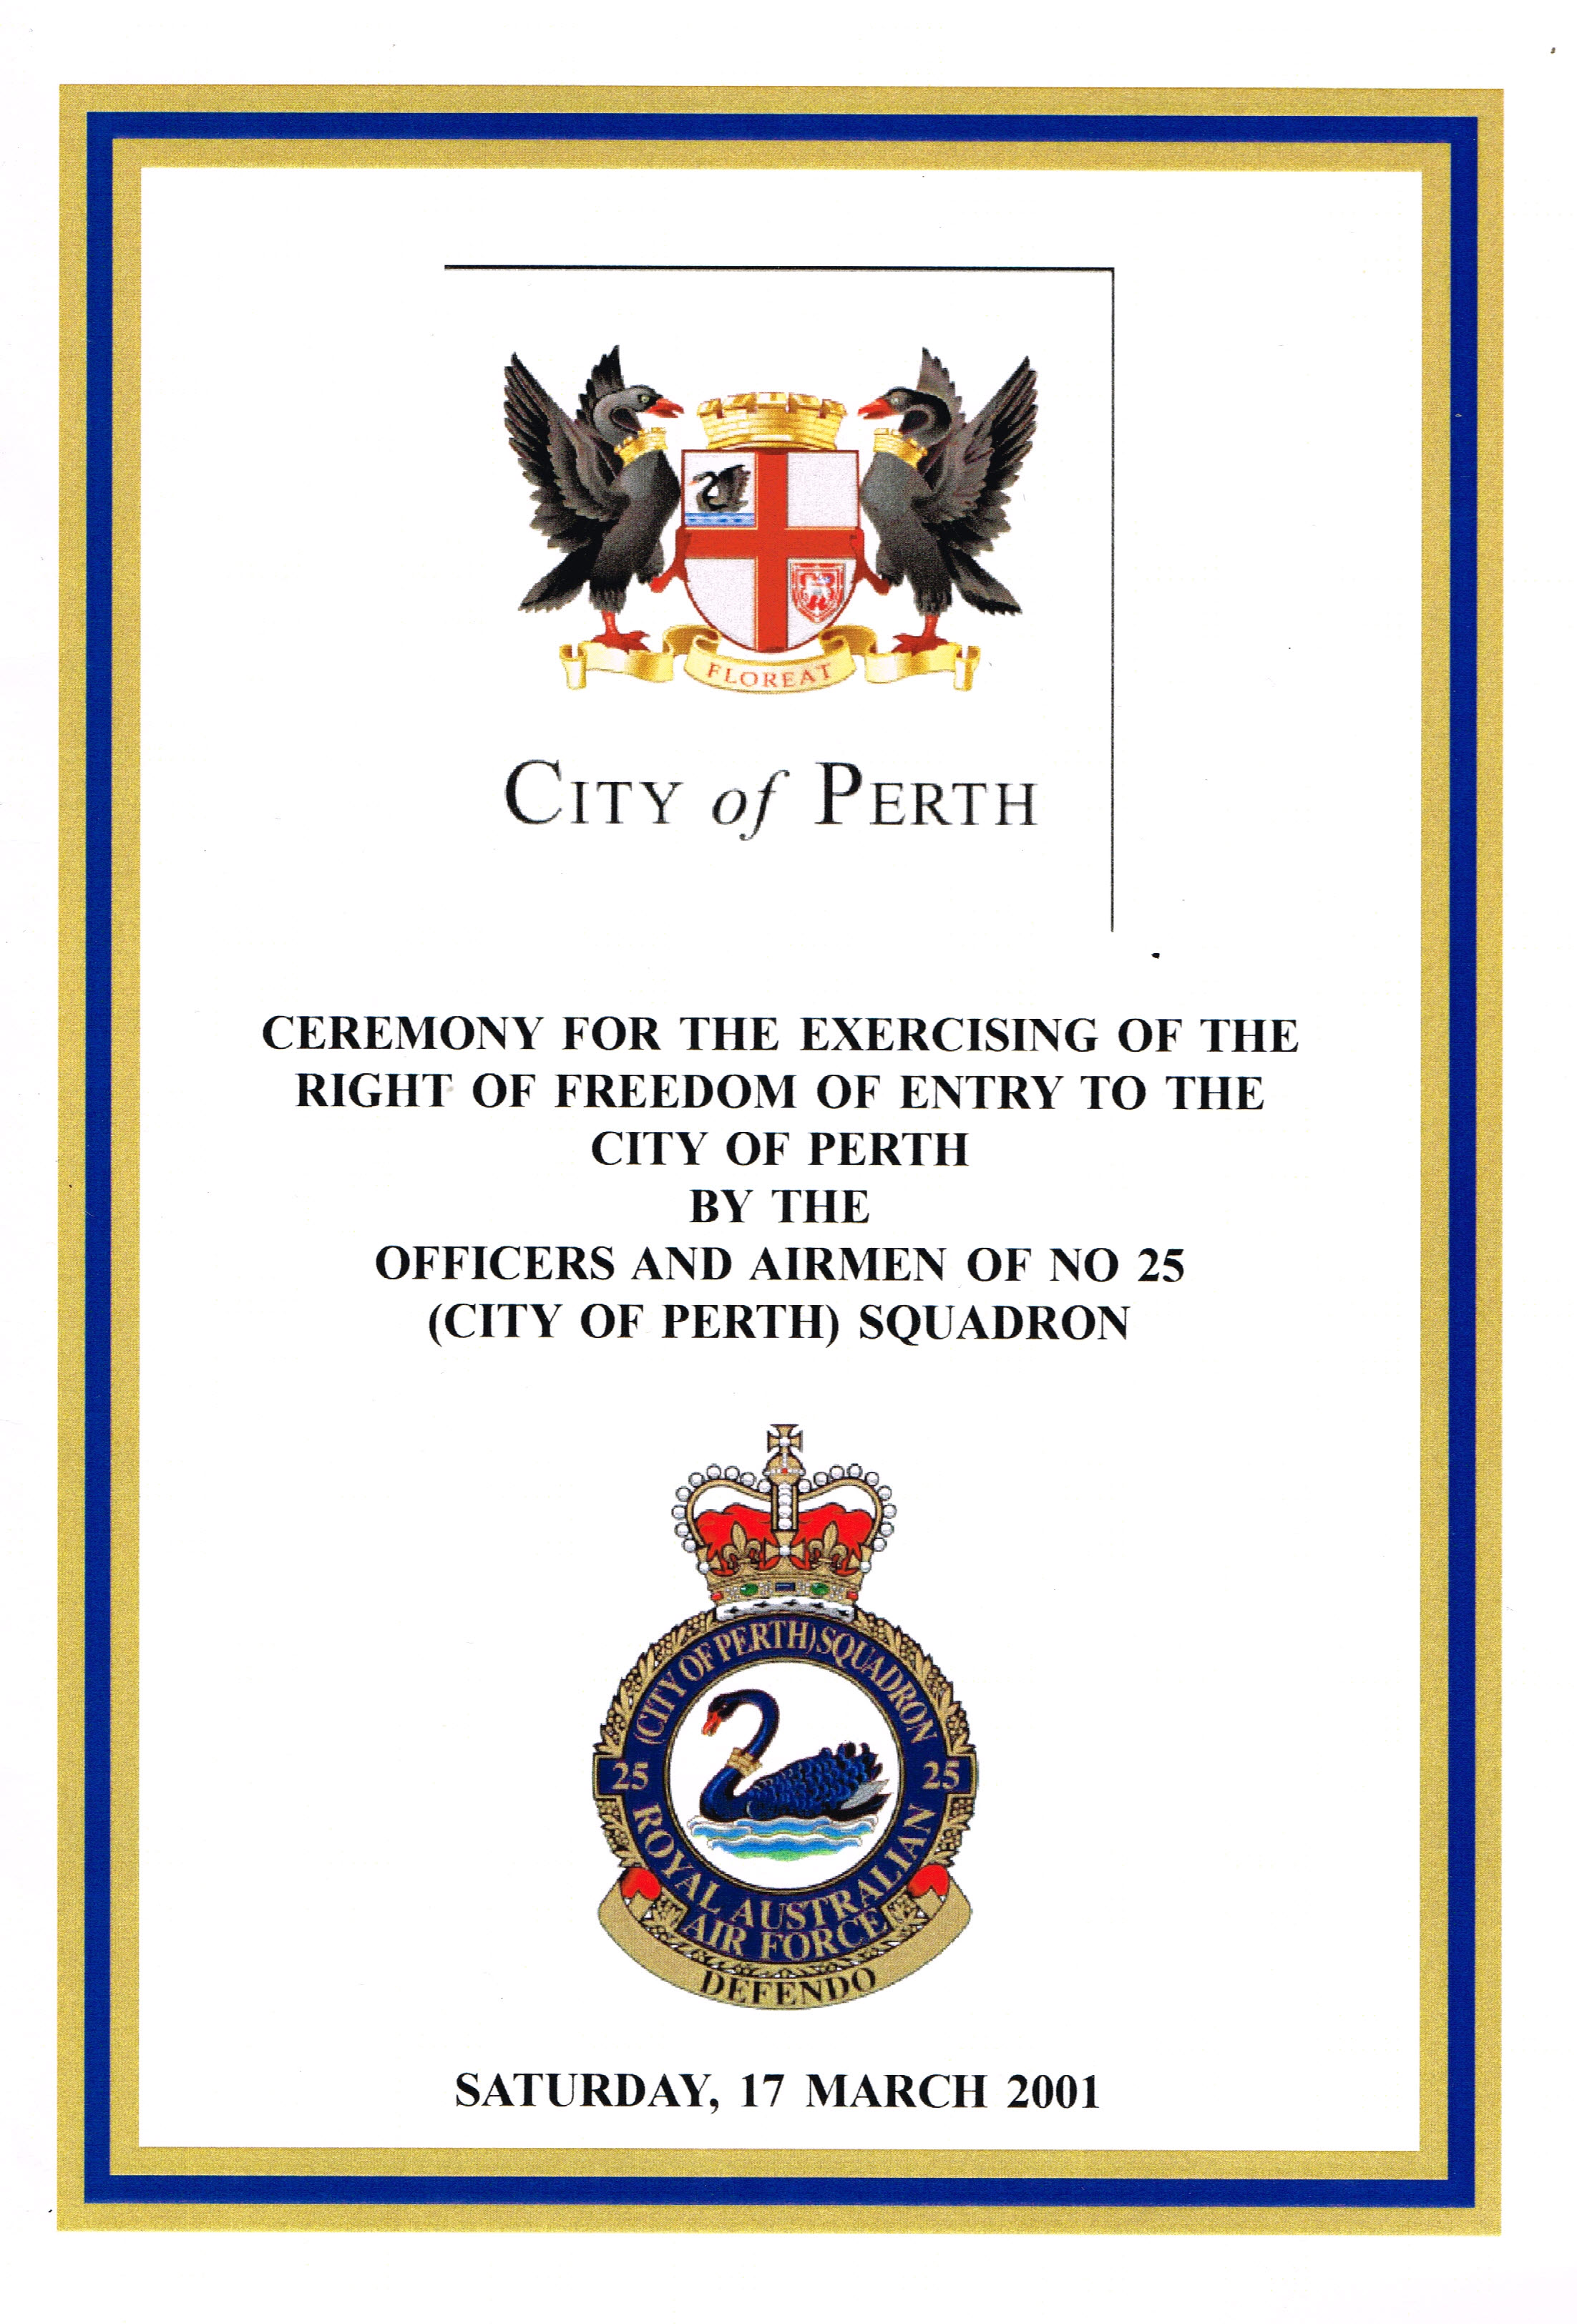 Ceremony for the Exercising of the Right of Entry to the City of Perth by the Officers and Airmen of No 25 (City of Perth) Squadron   City of Perth